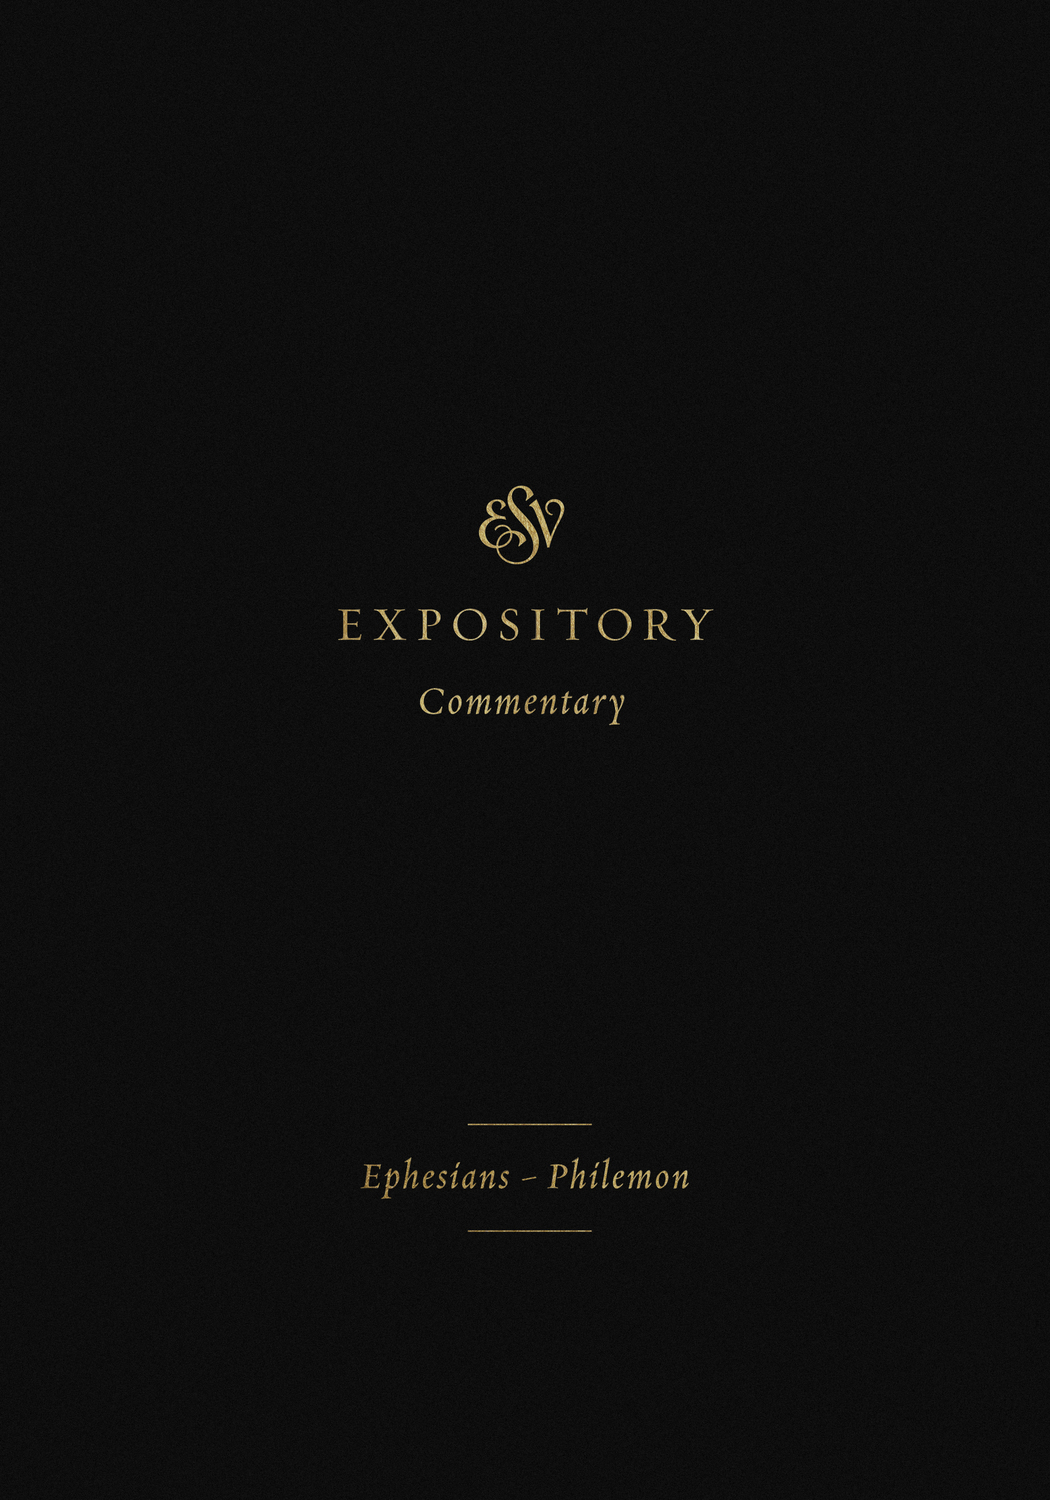 ESV Expository Commentary